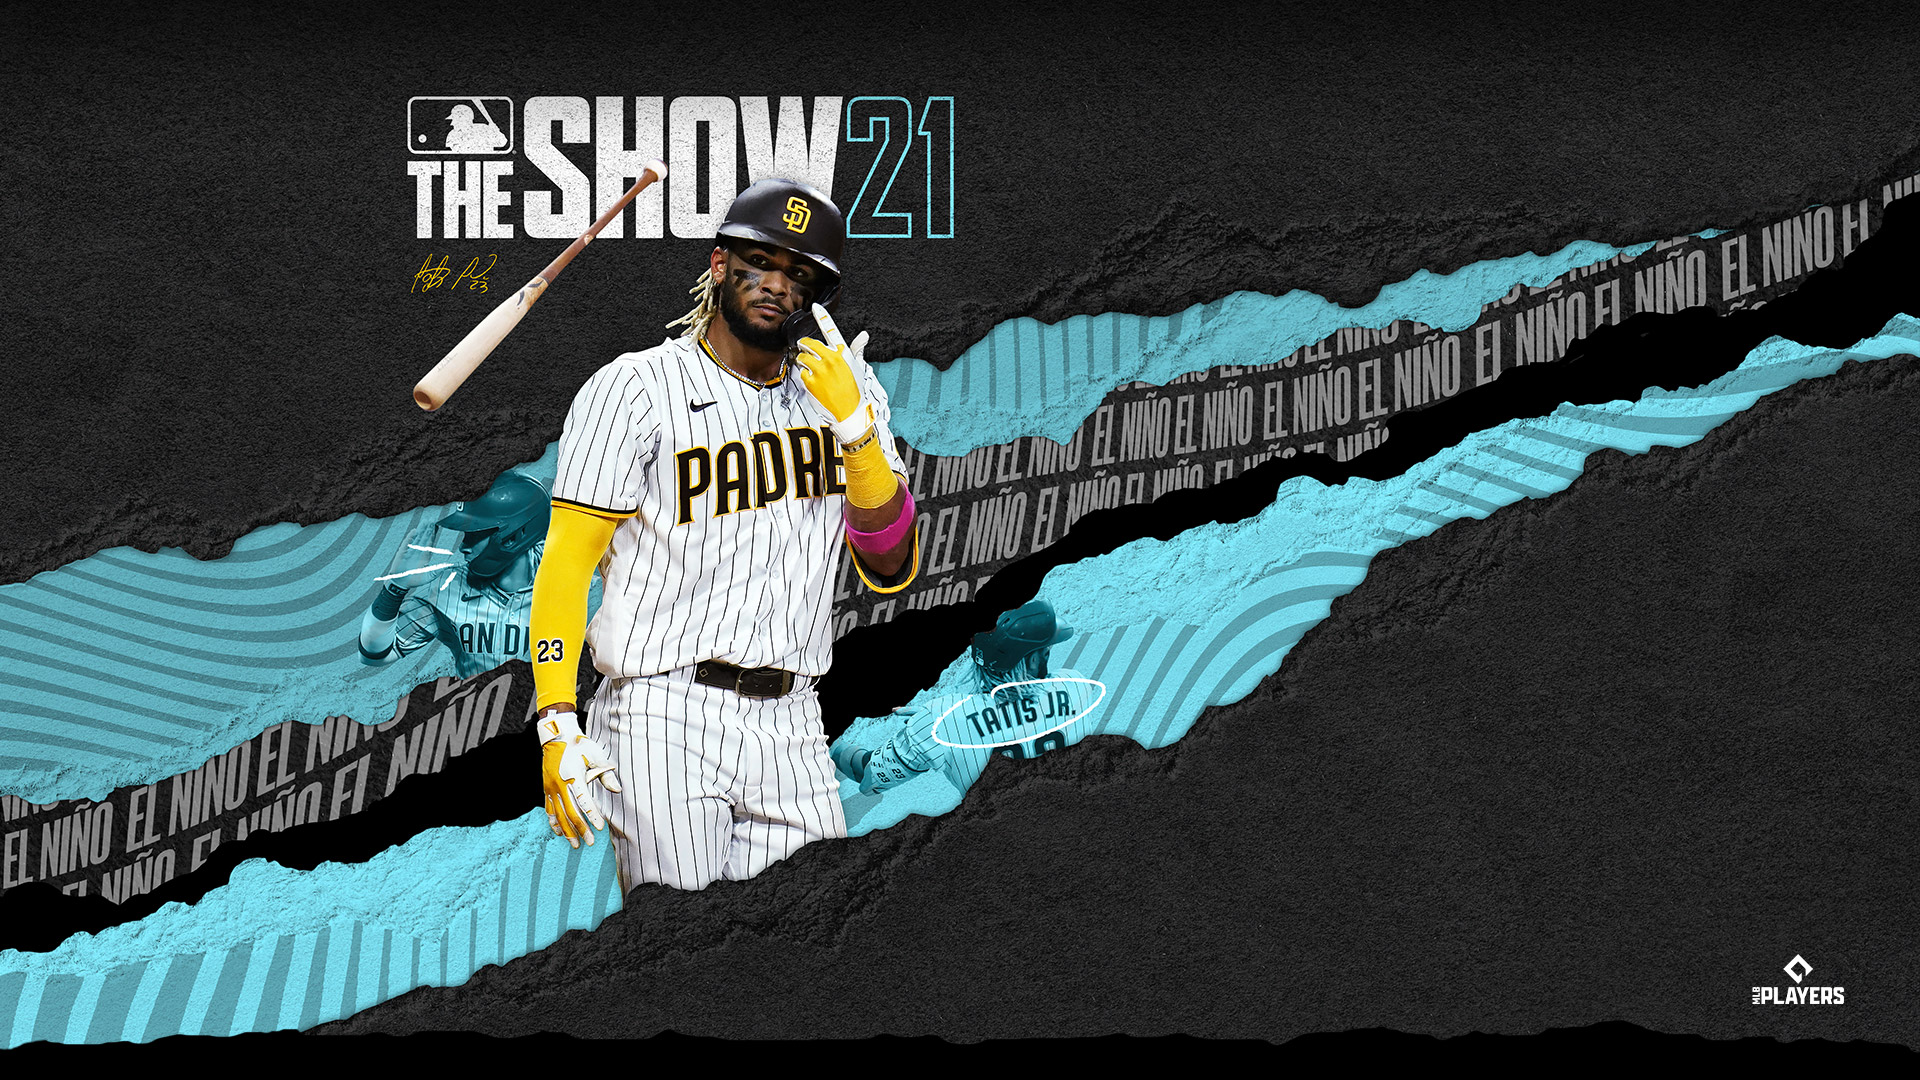 MLB The Show 21, Fernando Tatis Jr. of the Padres tosses his bat away, an MLB Players logo is in the corner.